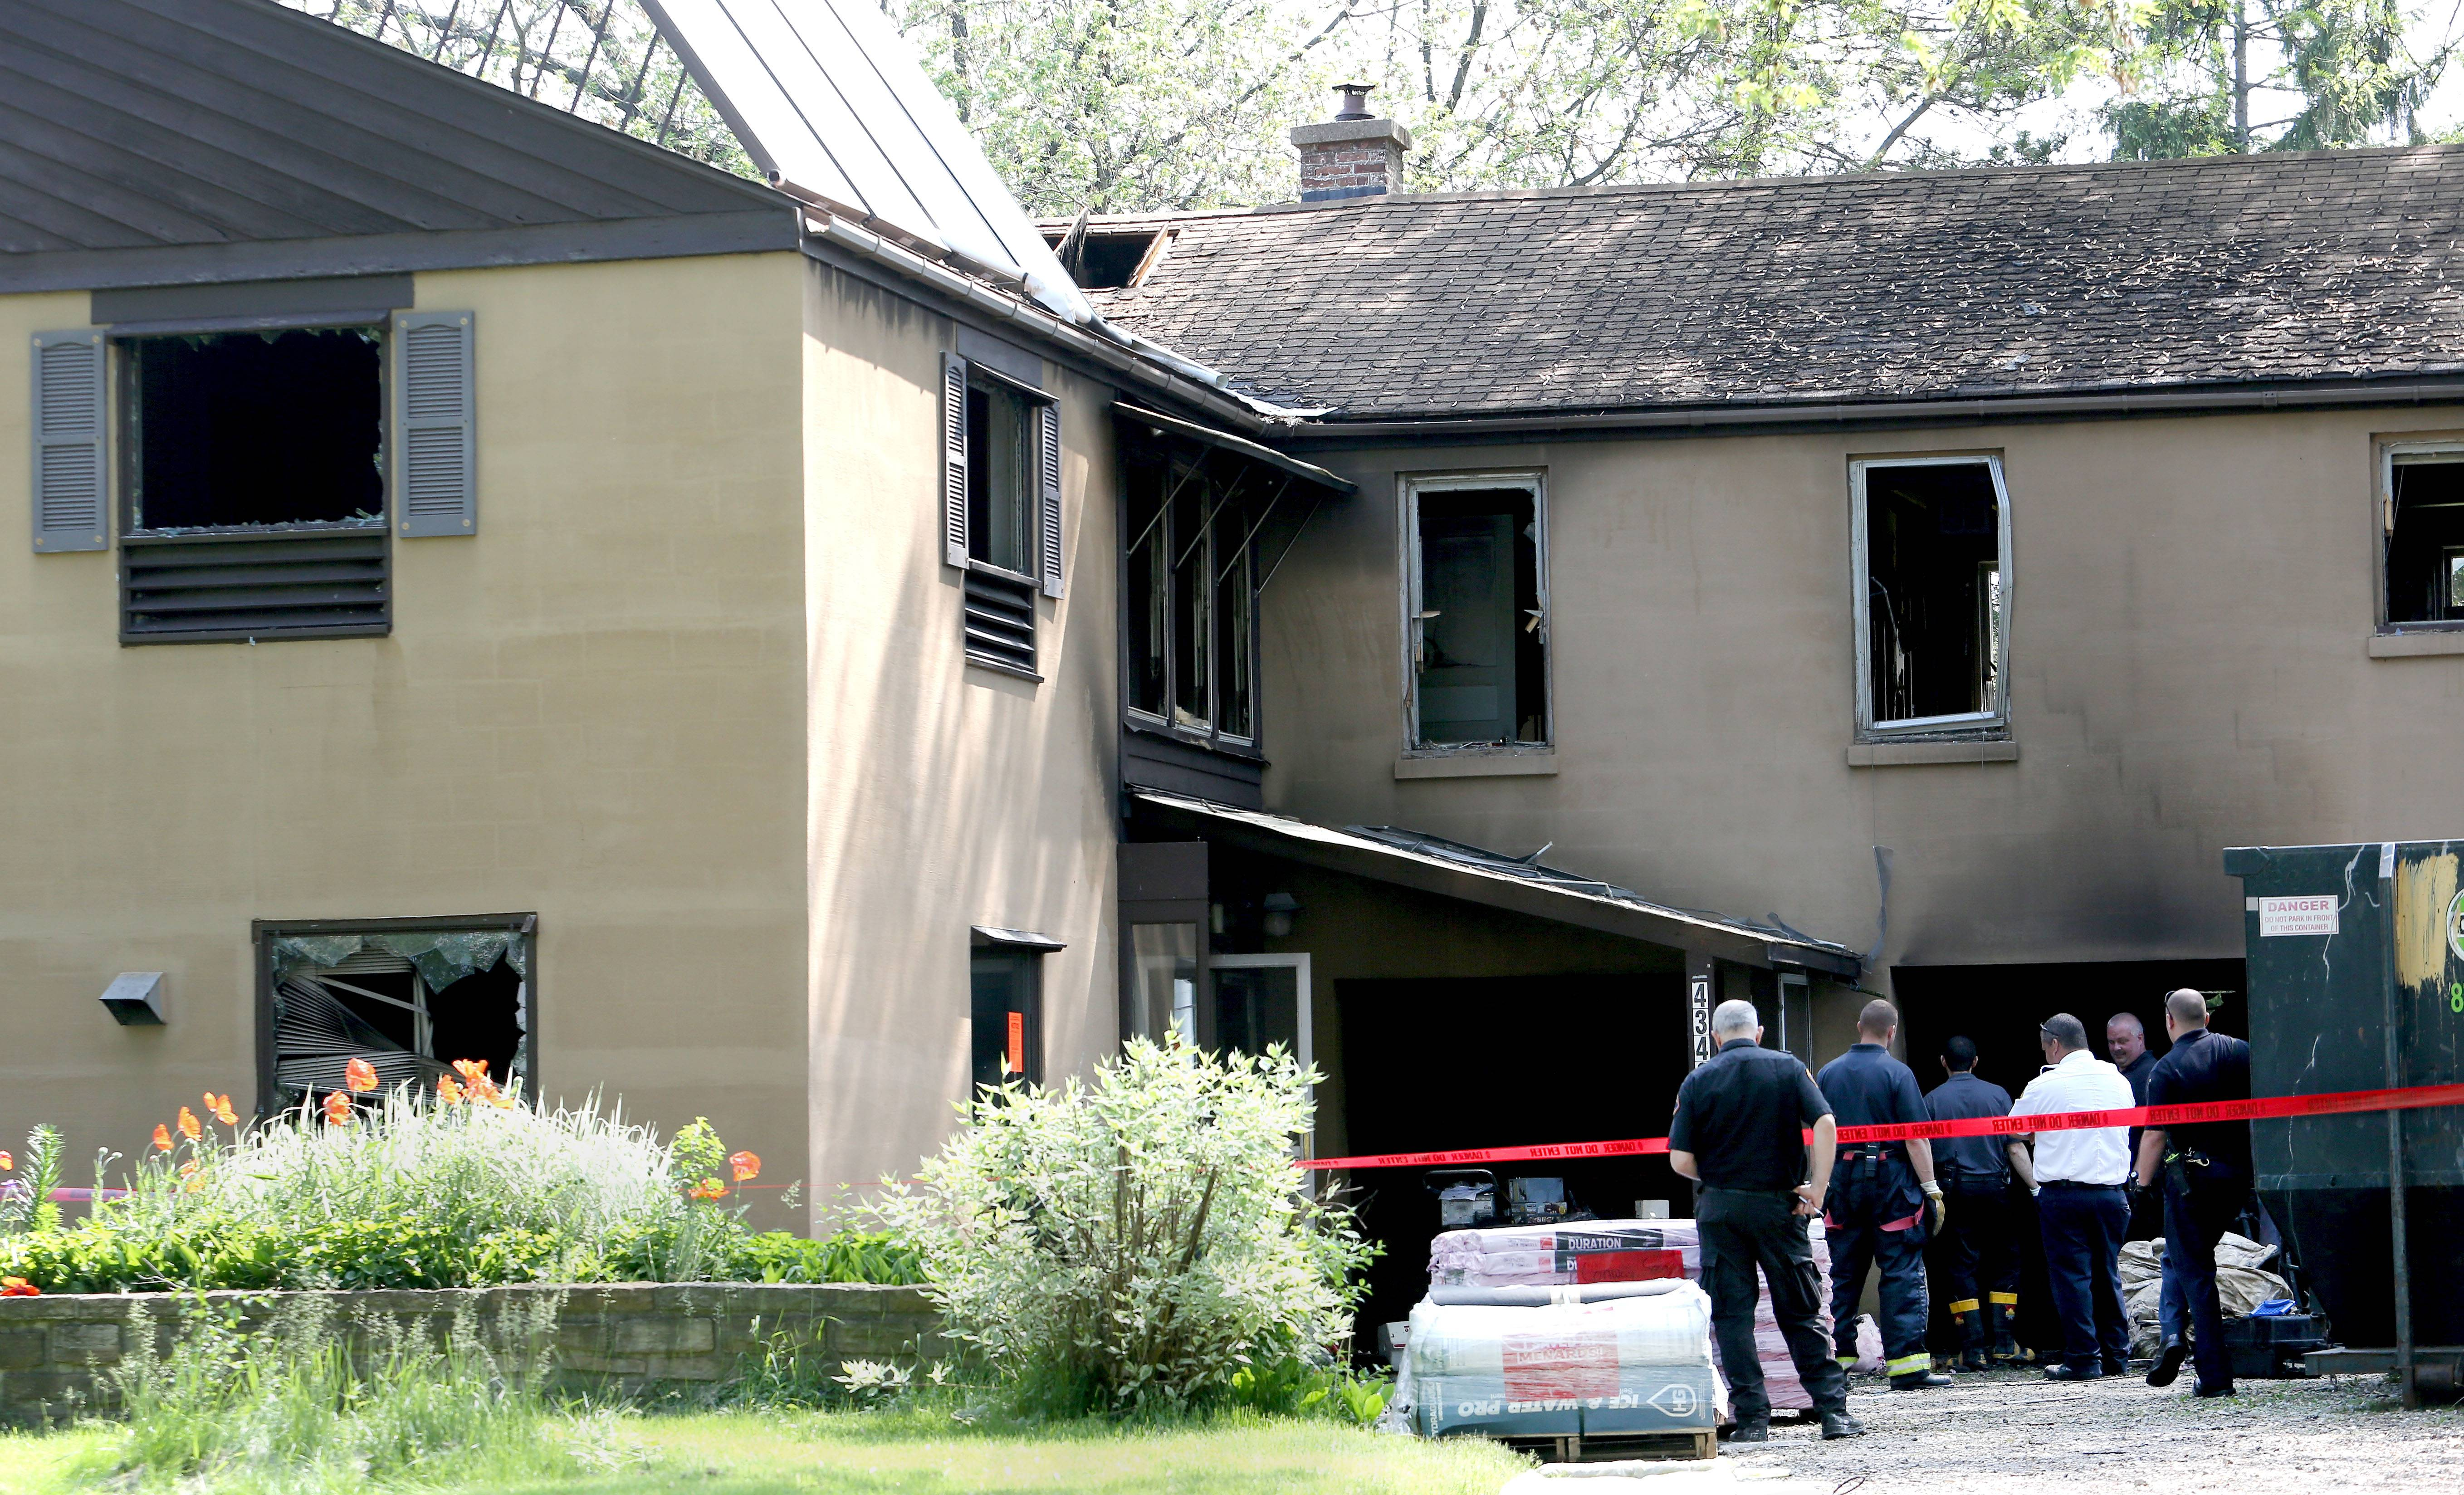 A malfunctioning furnace triggered a fire Thursday morning that swept through a Downers Grove house. No injuries were reported.